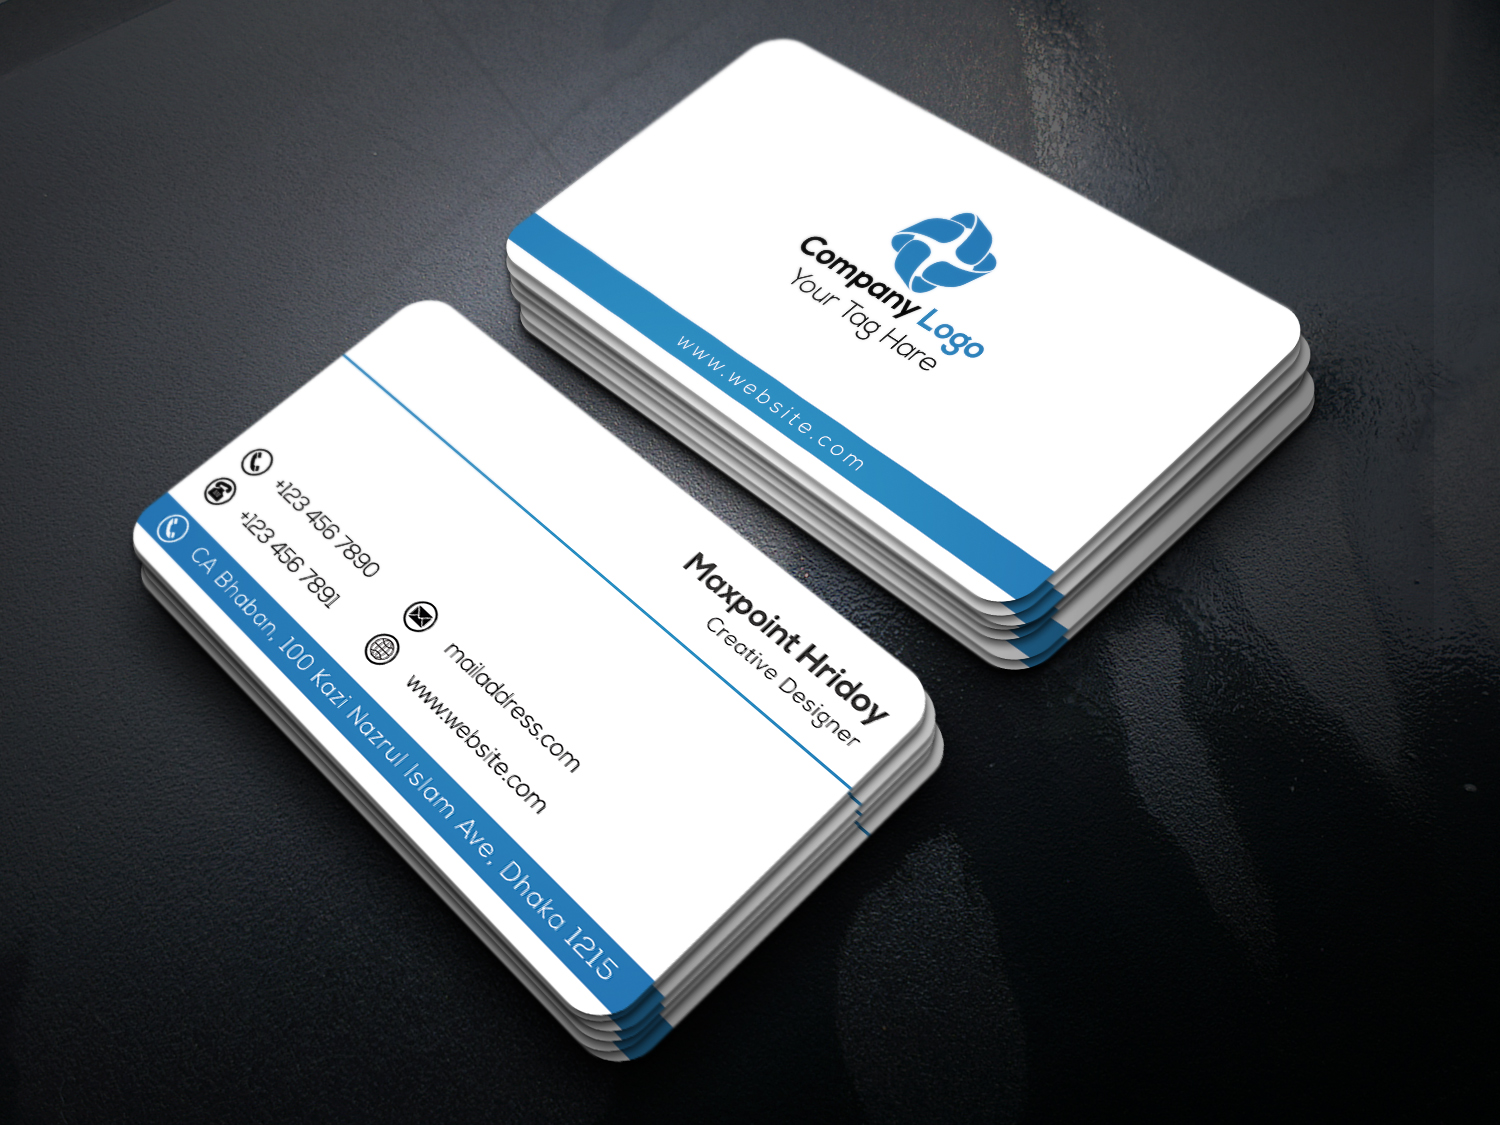 Maxpoint hridoy clean business card design bangla tutorial how to make a business card in photoshop magicingreecefo Choice Image